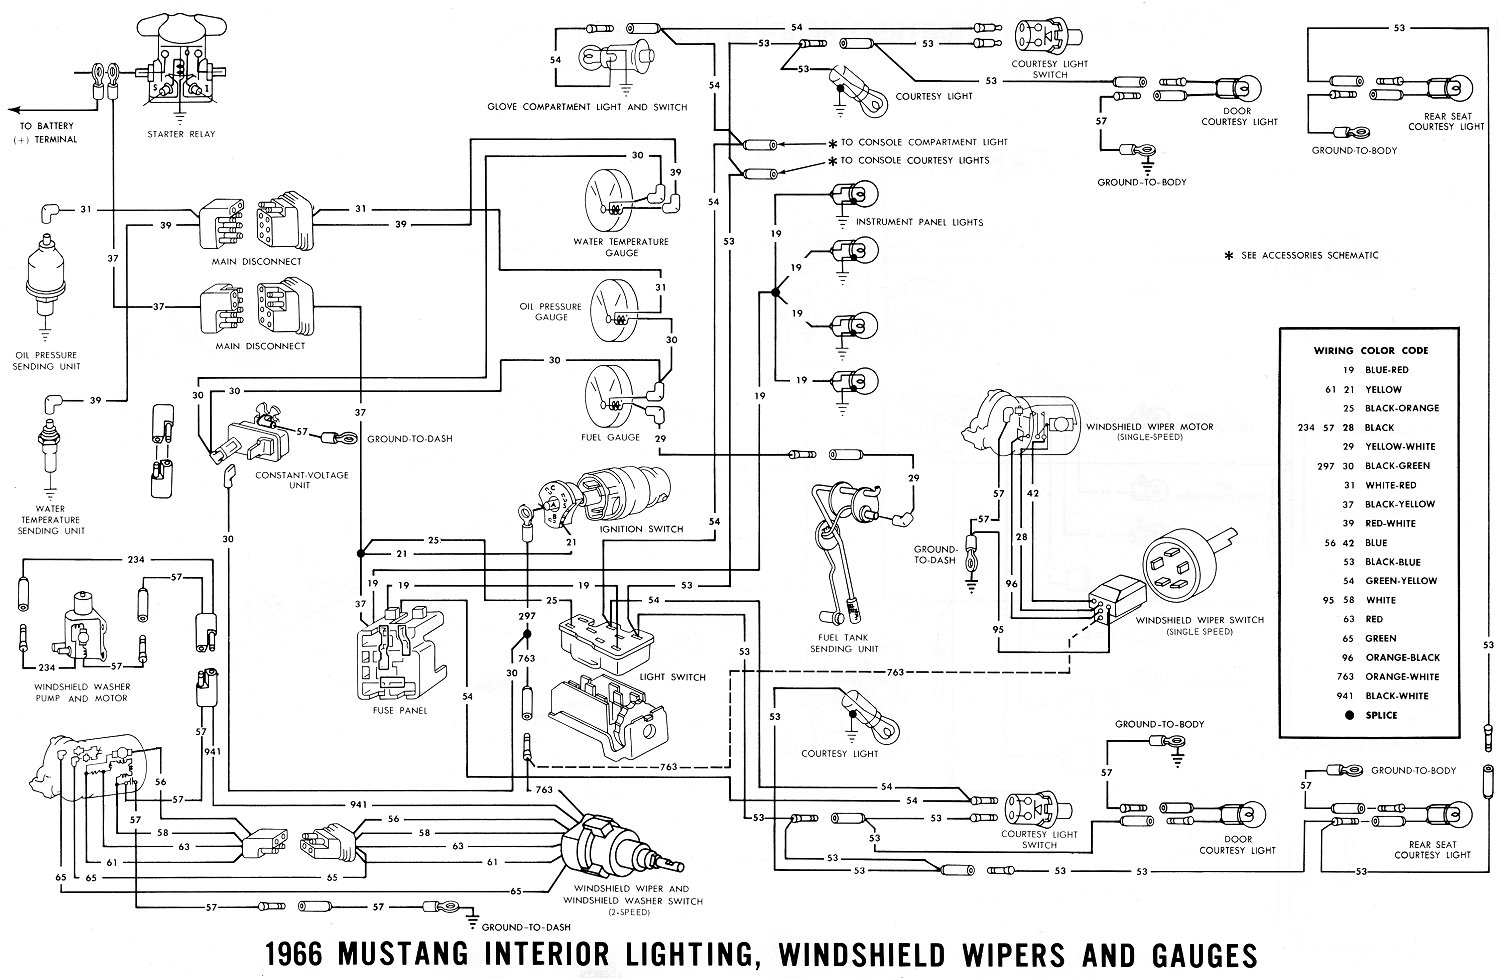 DIAGRAM] 1967 Mustang Light Wiring Diagram FULL Version HD Quality Wiring  Diagram - DABLABORATORY.EDF-RECRUTEMENT.FRedf-recrutement.fr